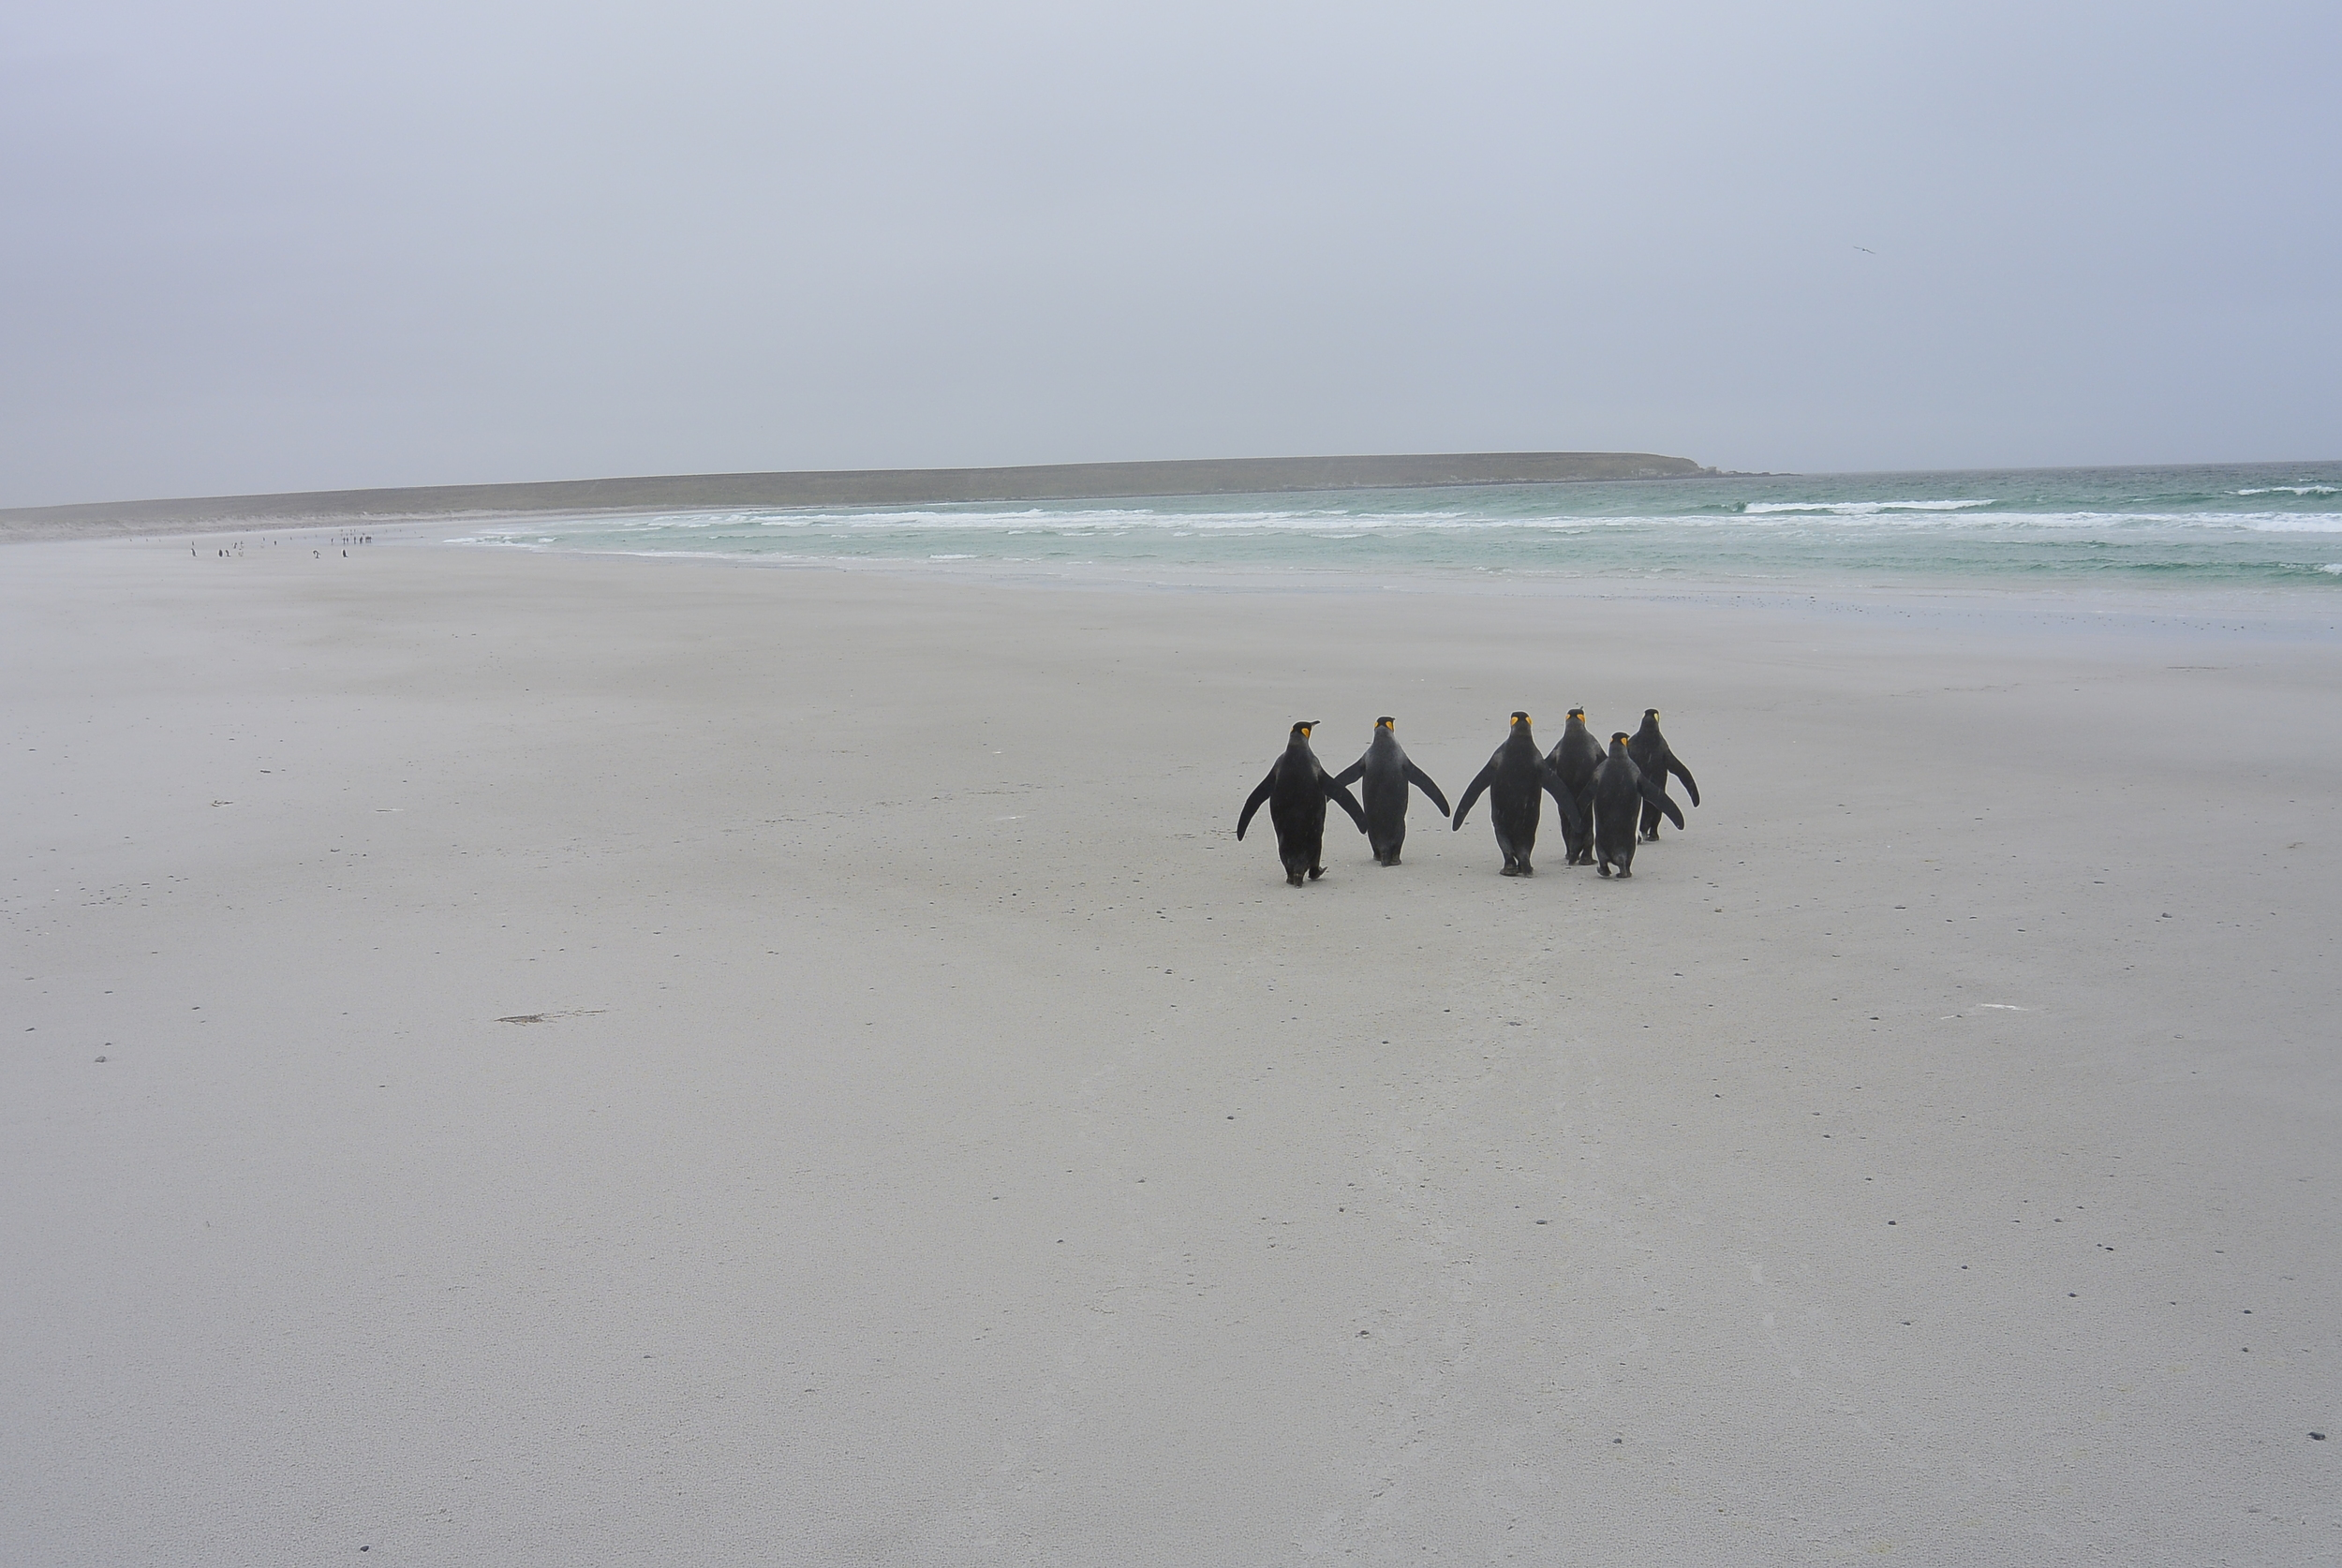 Falkland Islands Penguin Beach